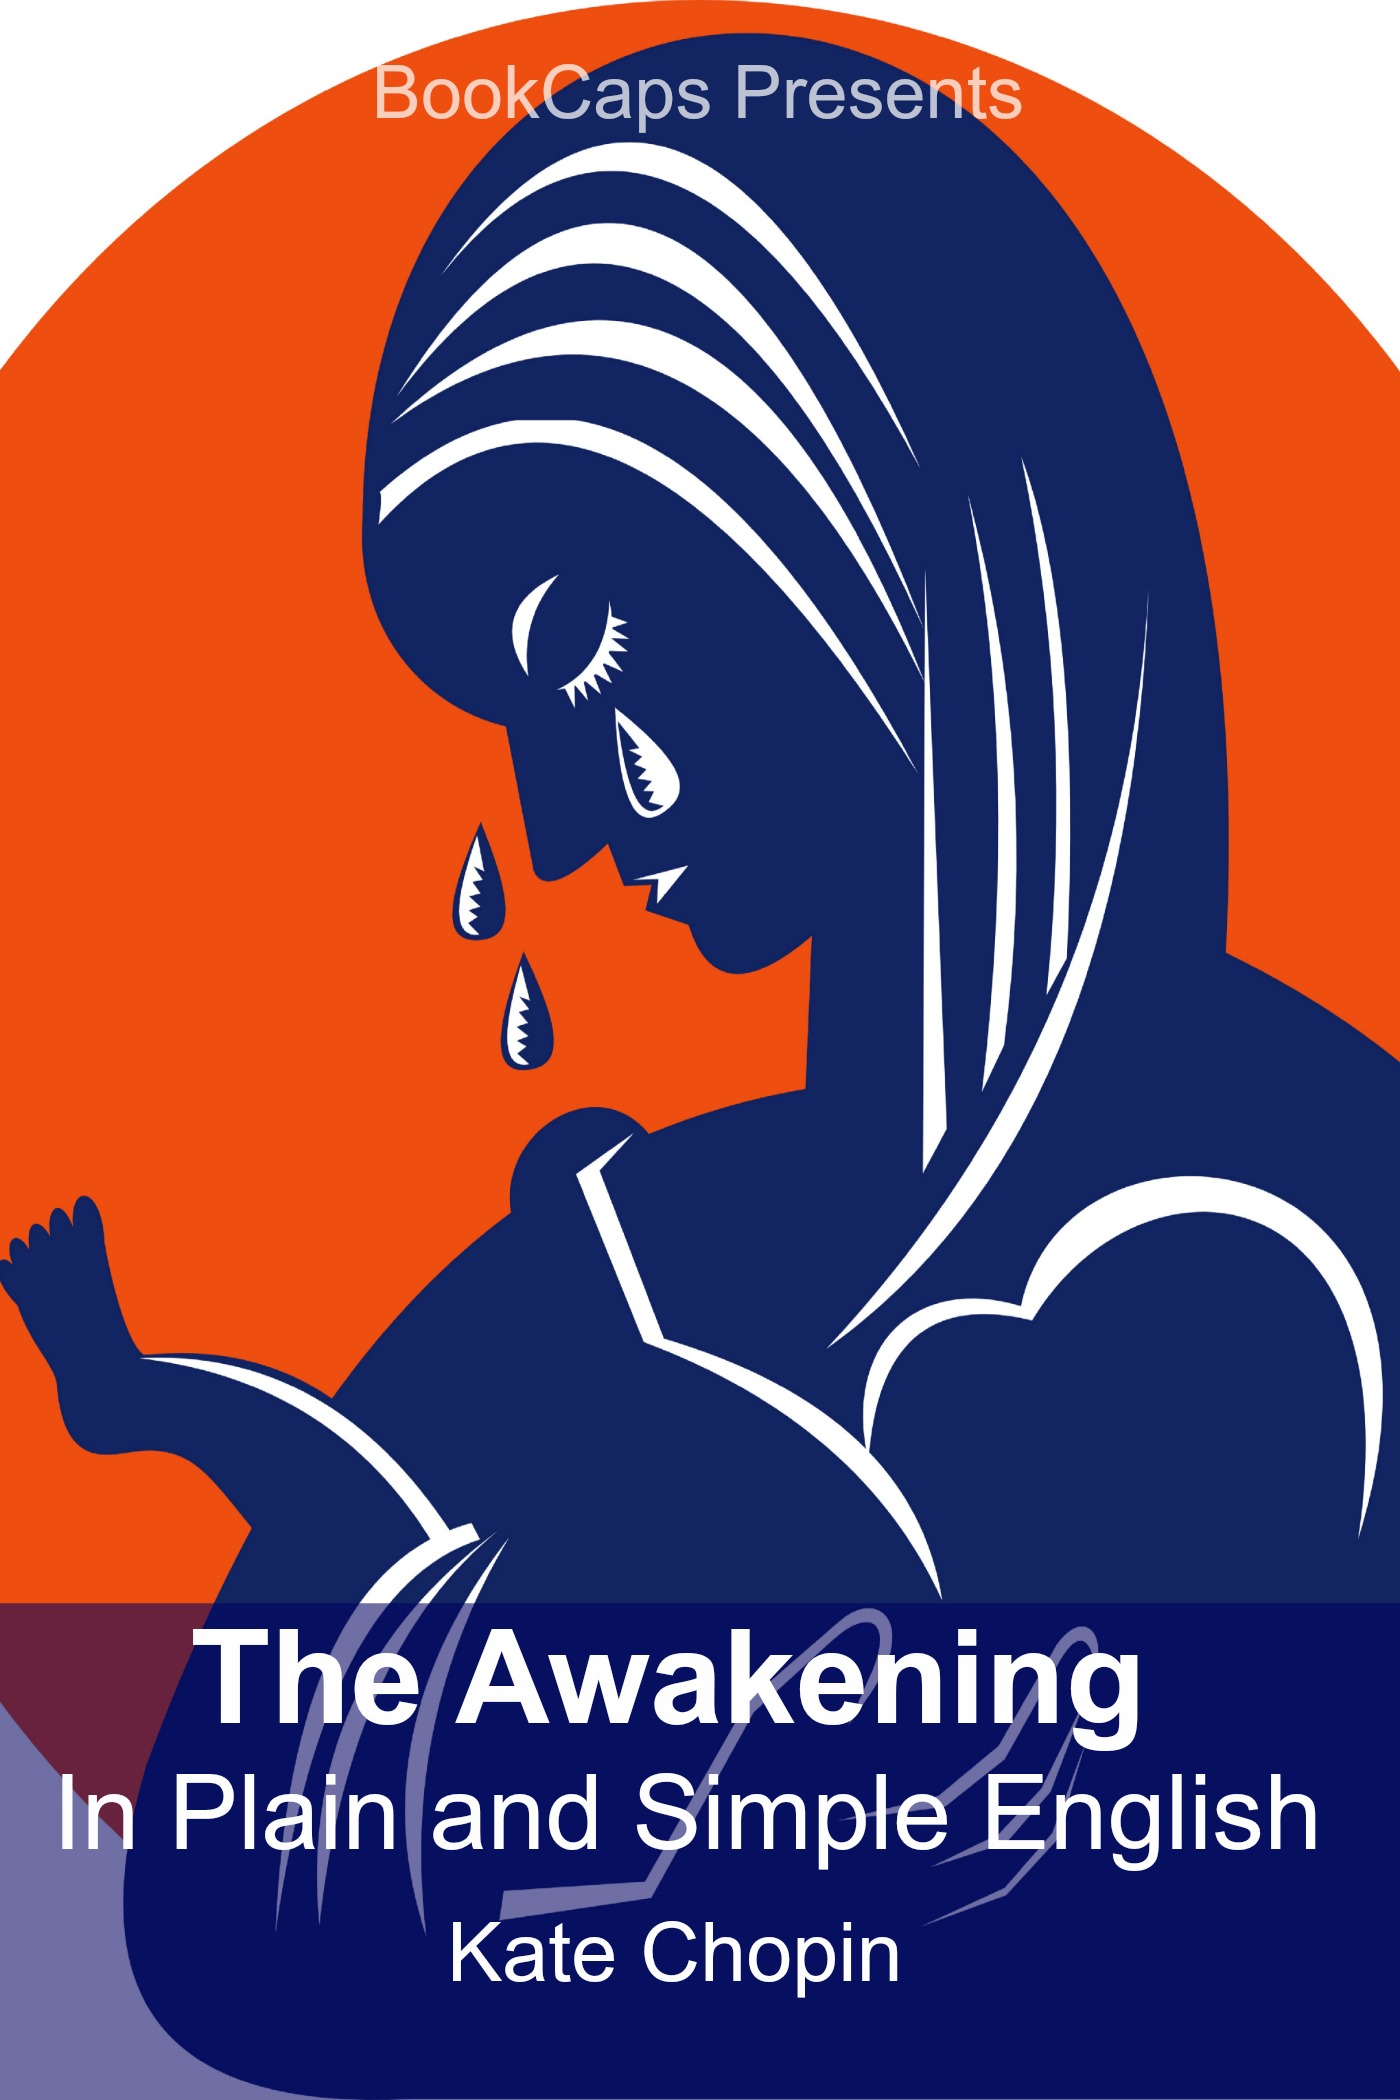 an analysis of the avian symbolism in the awakening by kate chopin